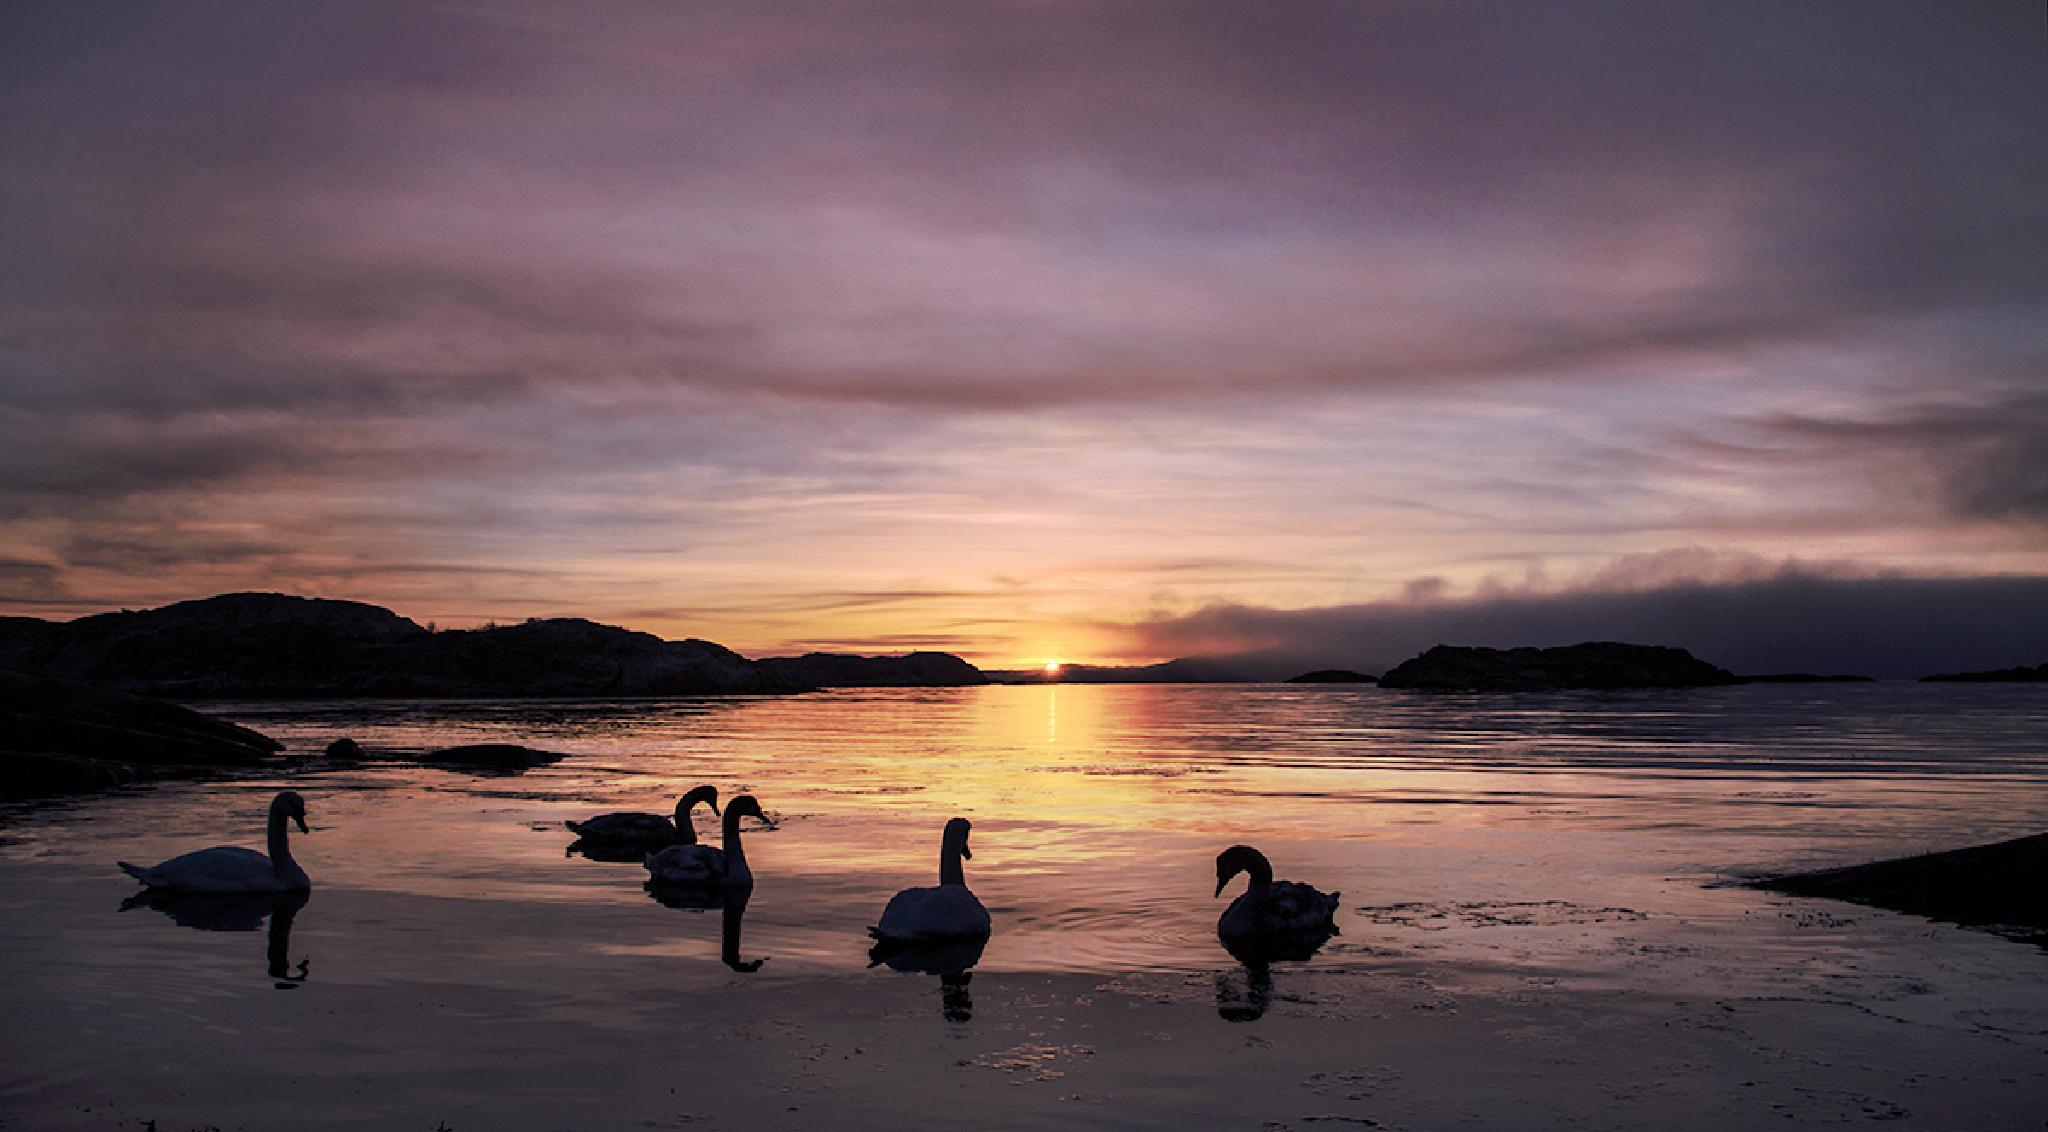 The swans in the sunrise by Syssy Jaktman